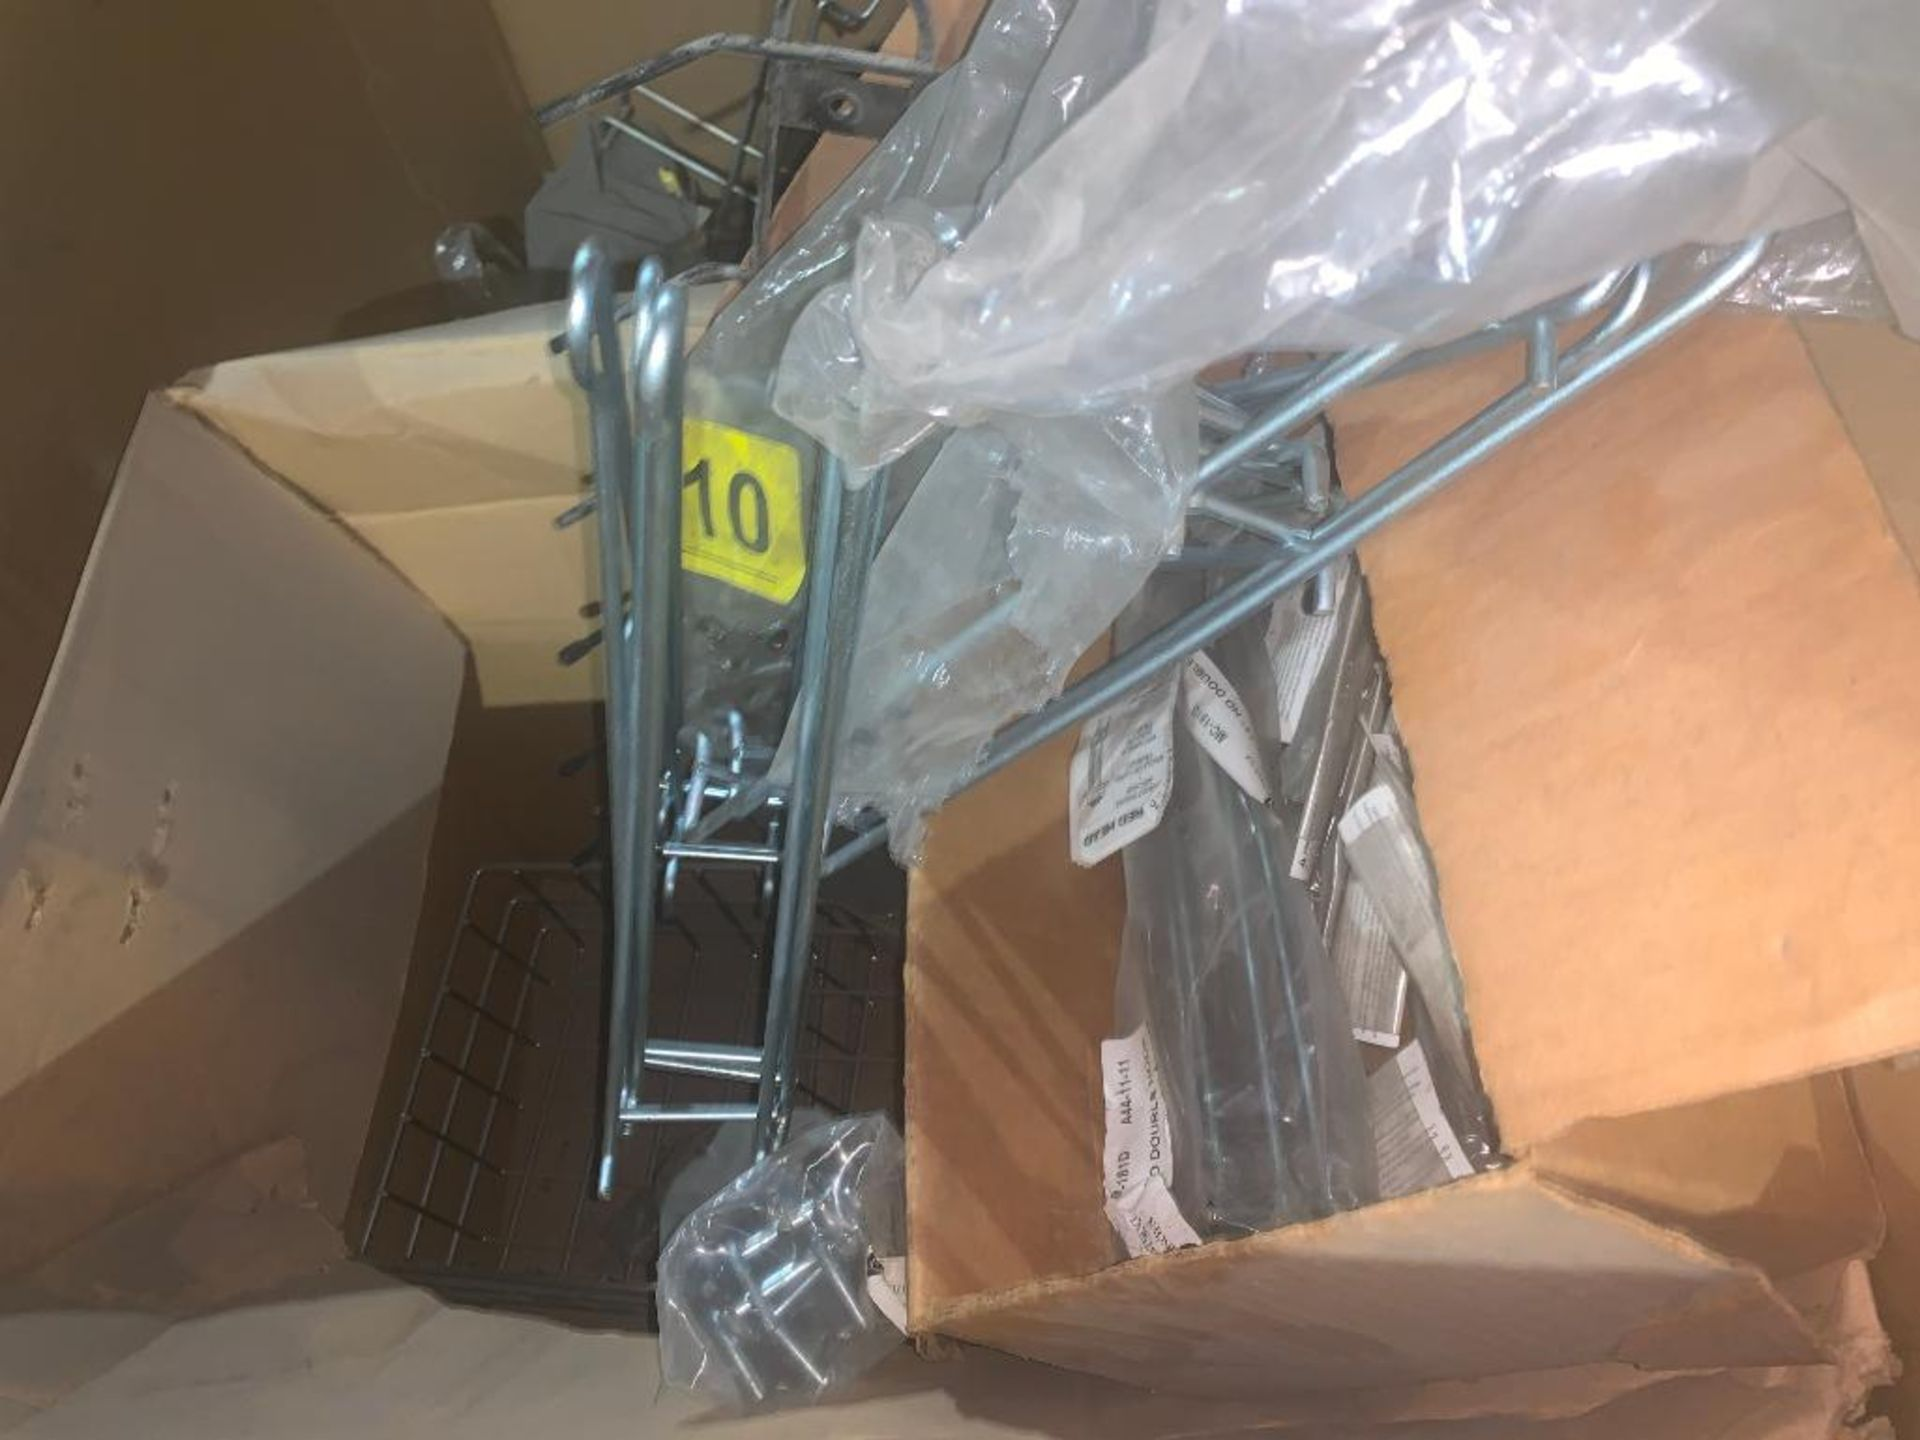 pallet of wire baskets and wire parts - Image 4 of 7